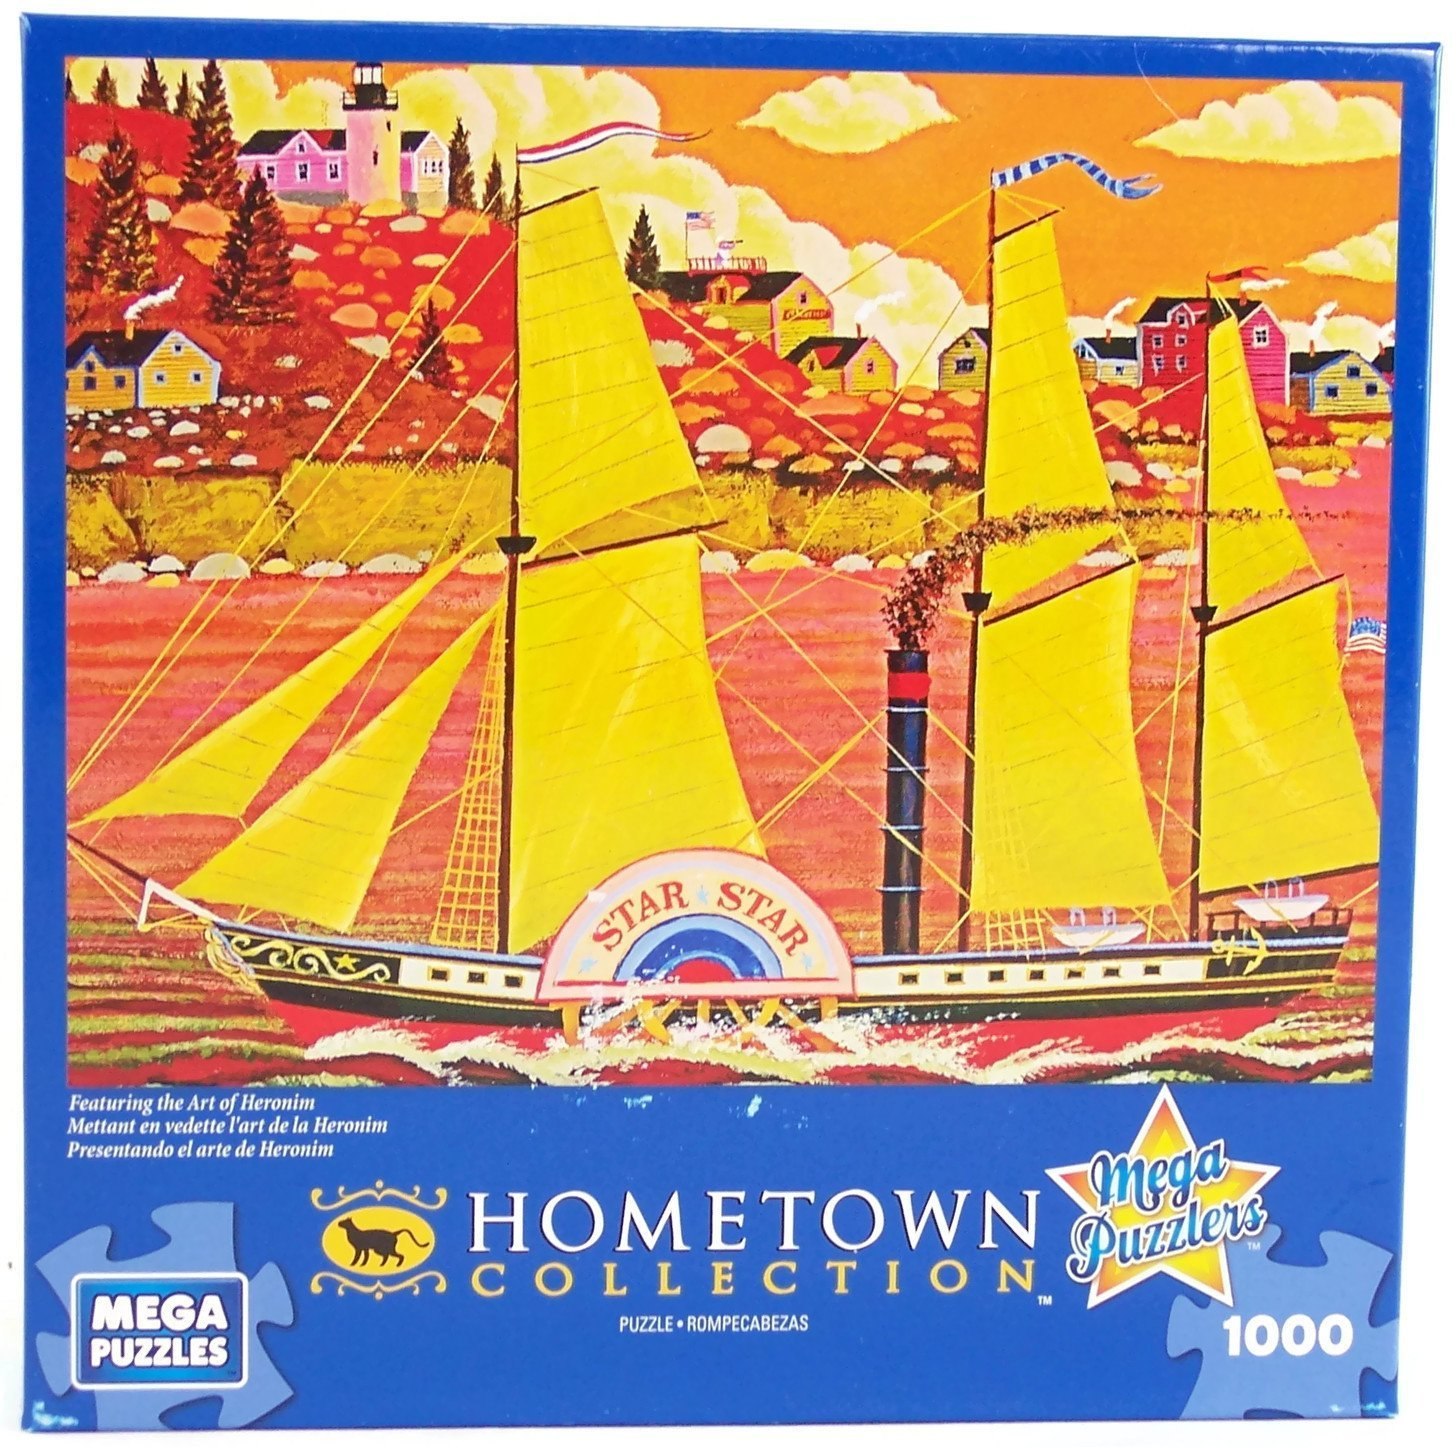 Hometown Collection Ocean Star 1000 Piece Jigsaw Puzzle By Heronim Mega Brands America Inc.